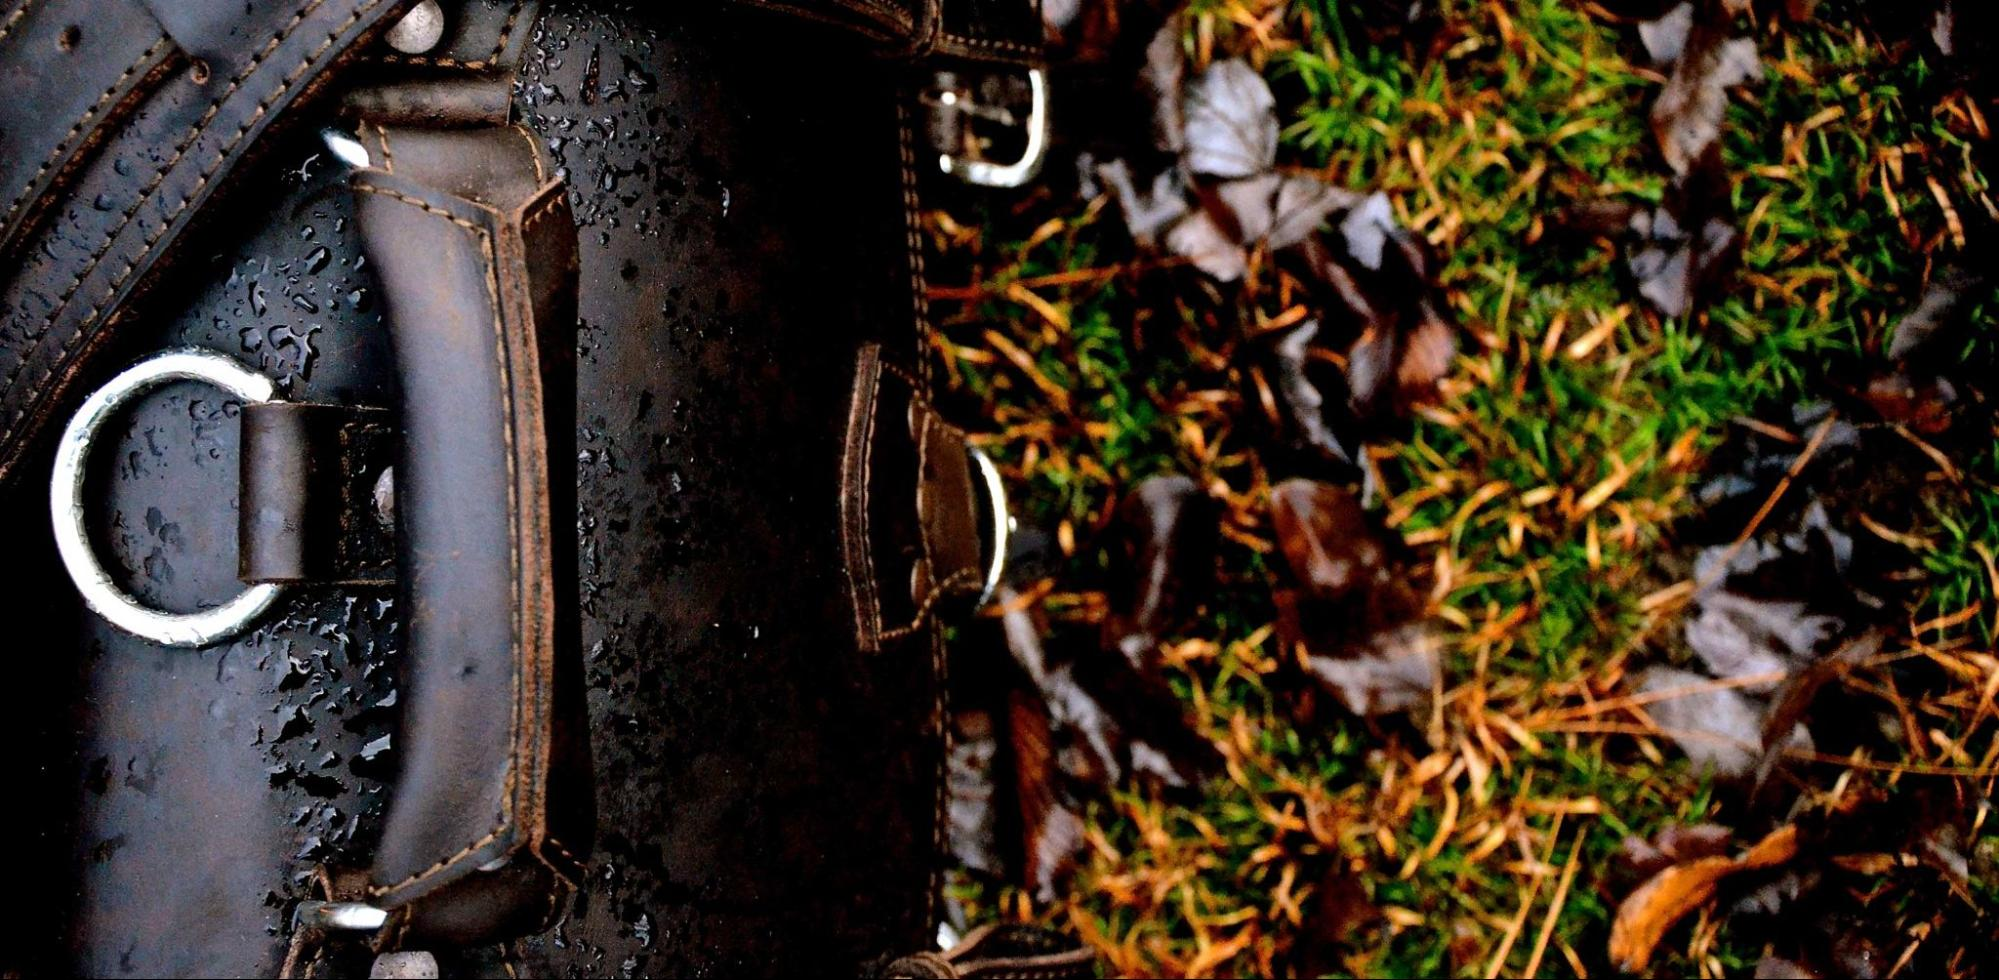 How To Deal With Rain-damaged Leather?